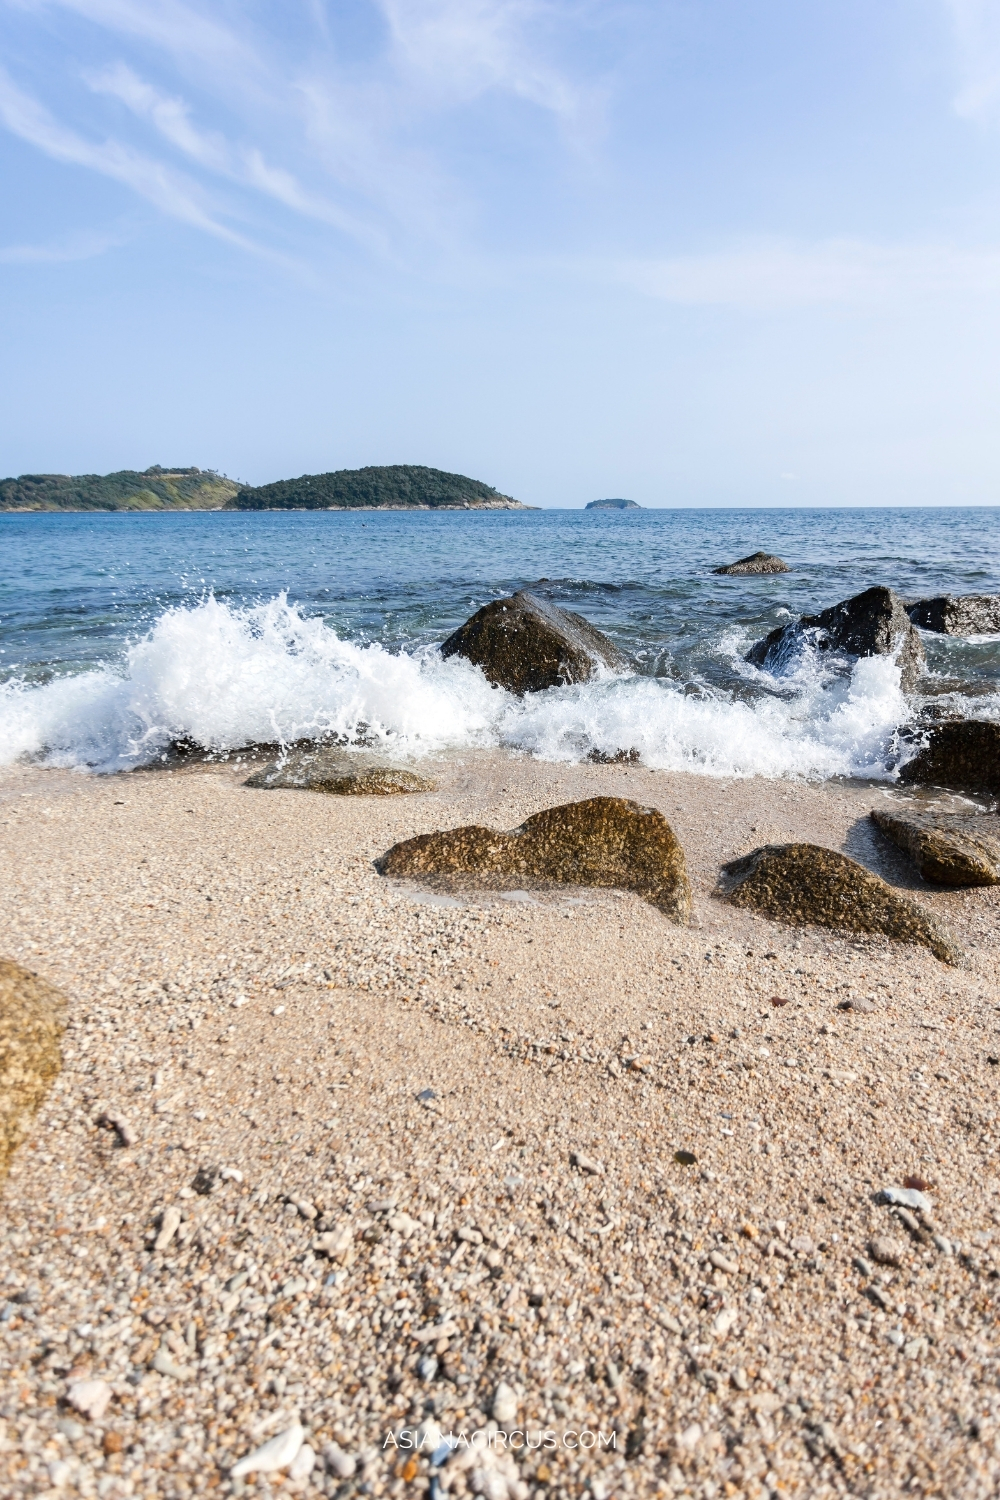 Ao Sane beach for snorkeling and diving - best beaches in Phuket, Thailand